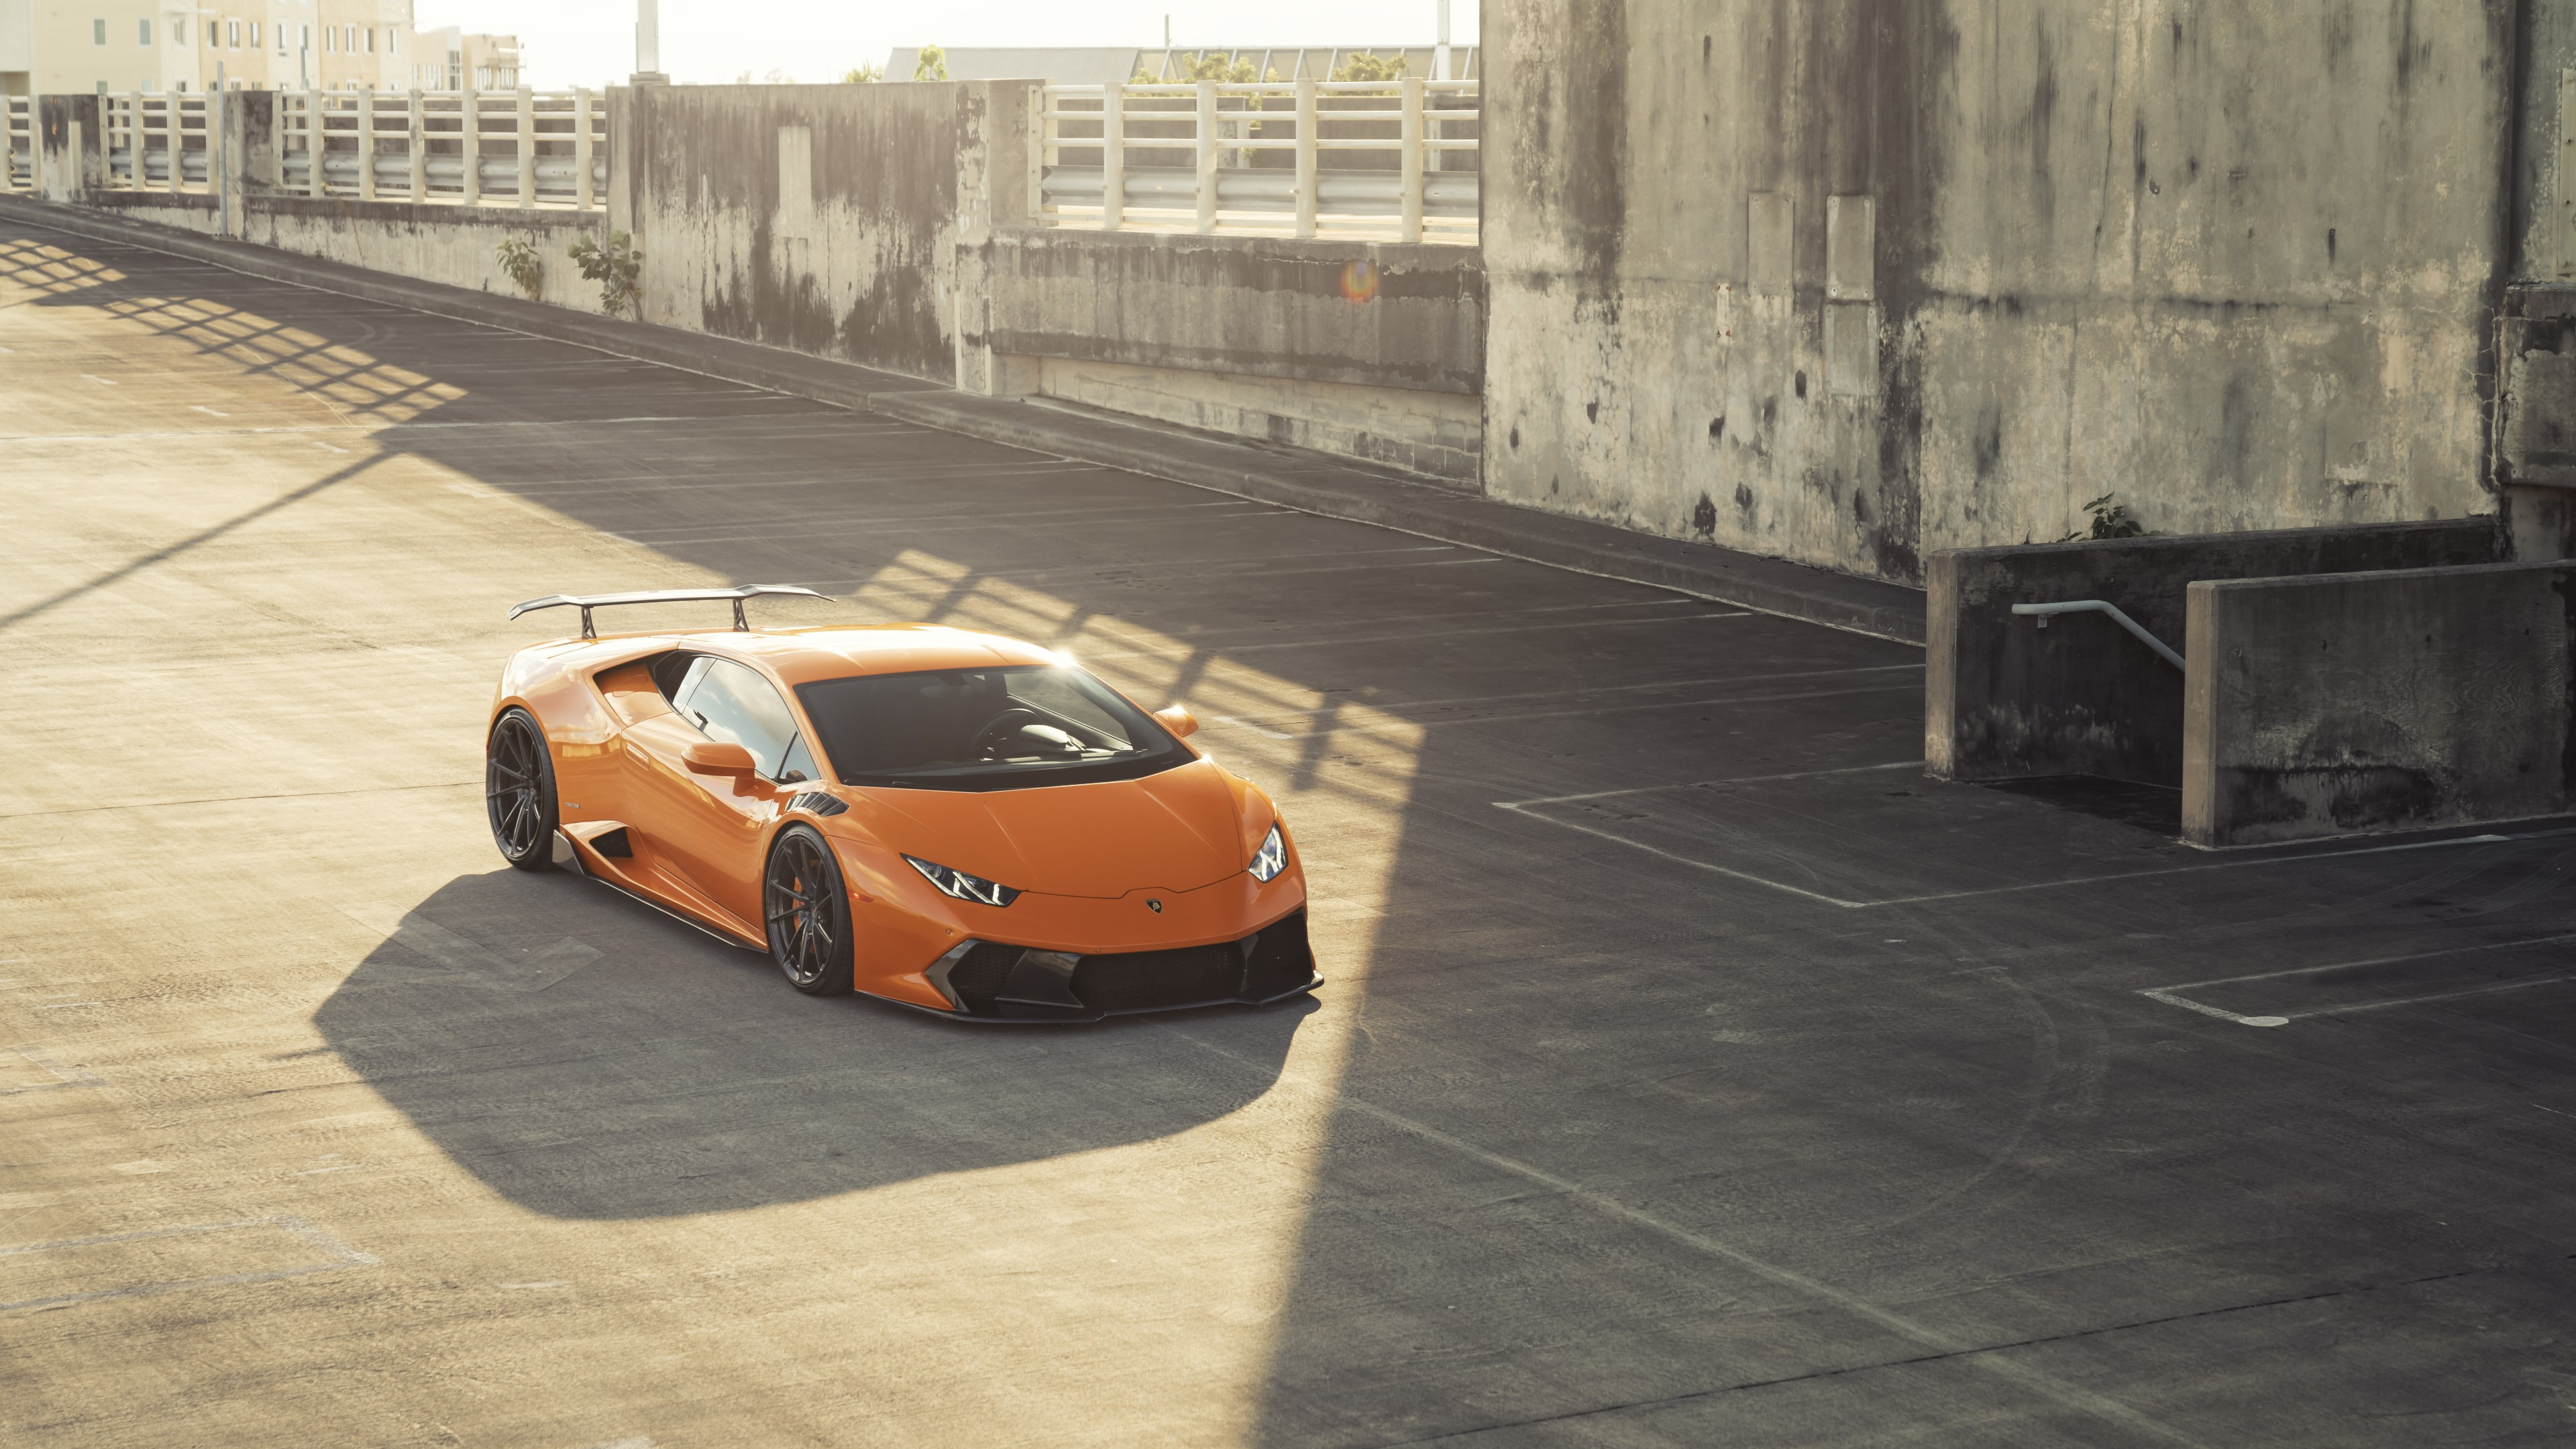 ANRKY Fish Orange Lambo Huracan wallpaper 3840x2160